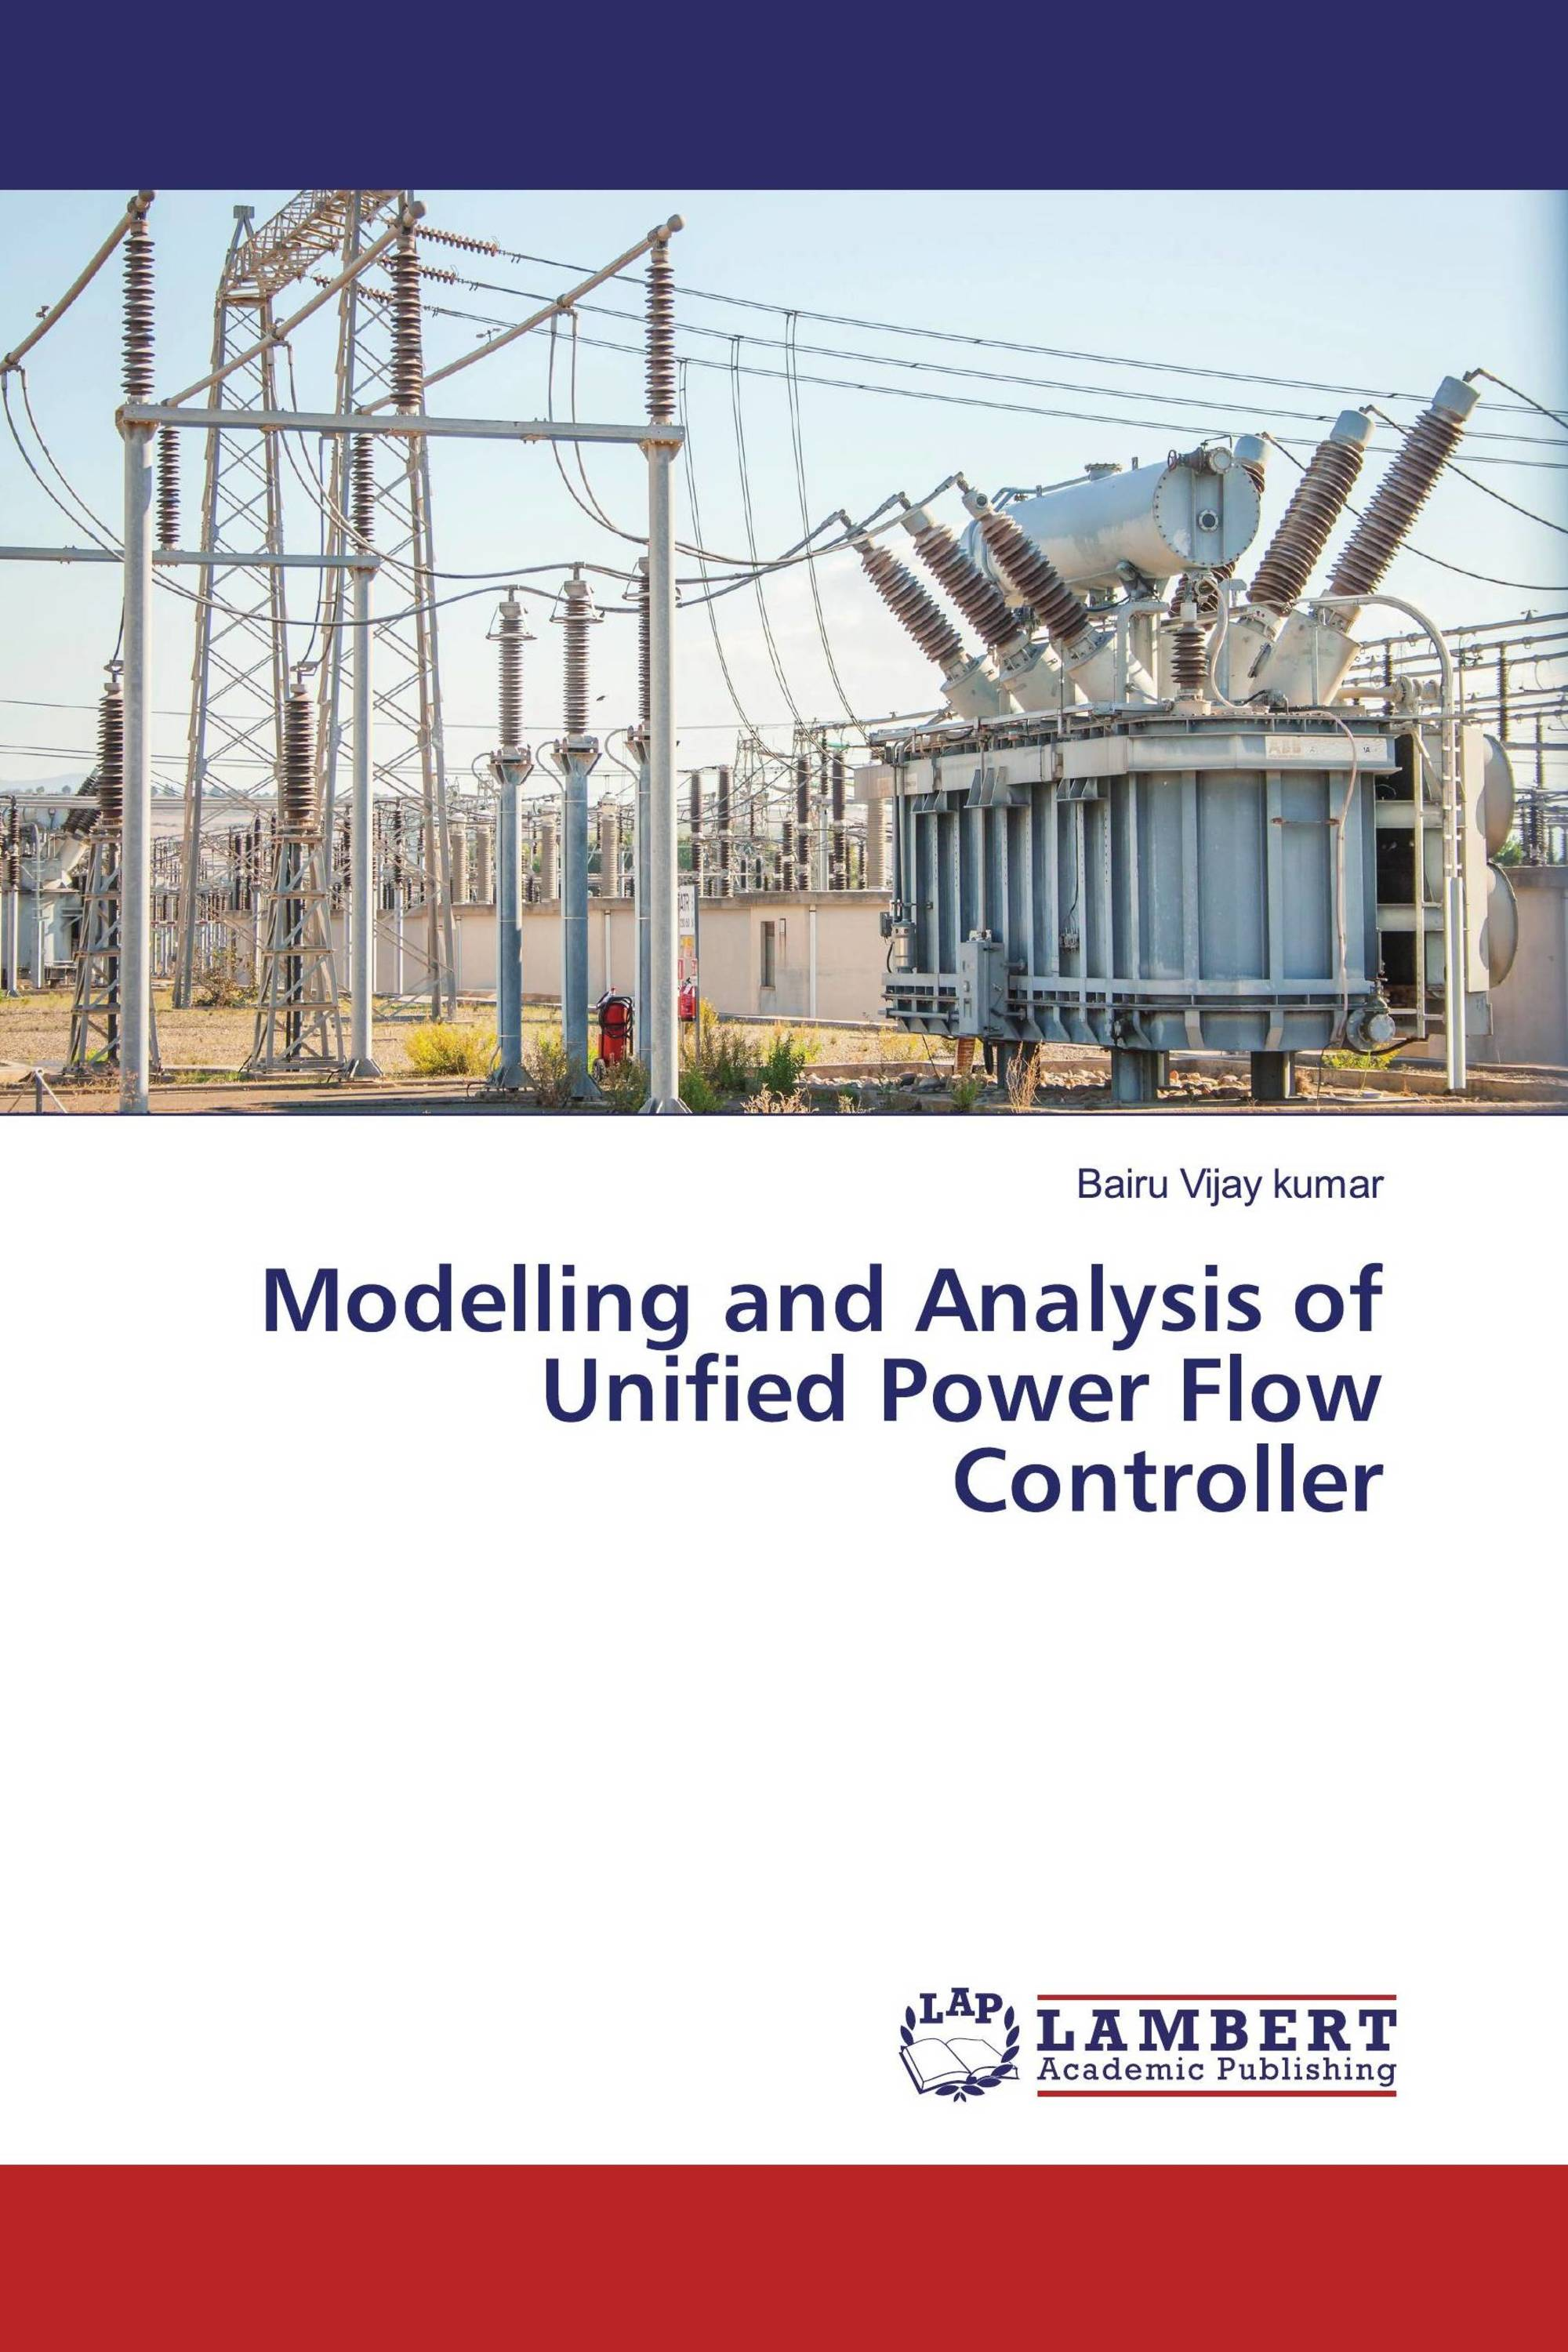 Modelling and Analysis of Unified Power Flow Controller